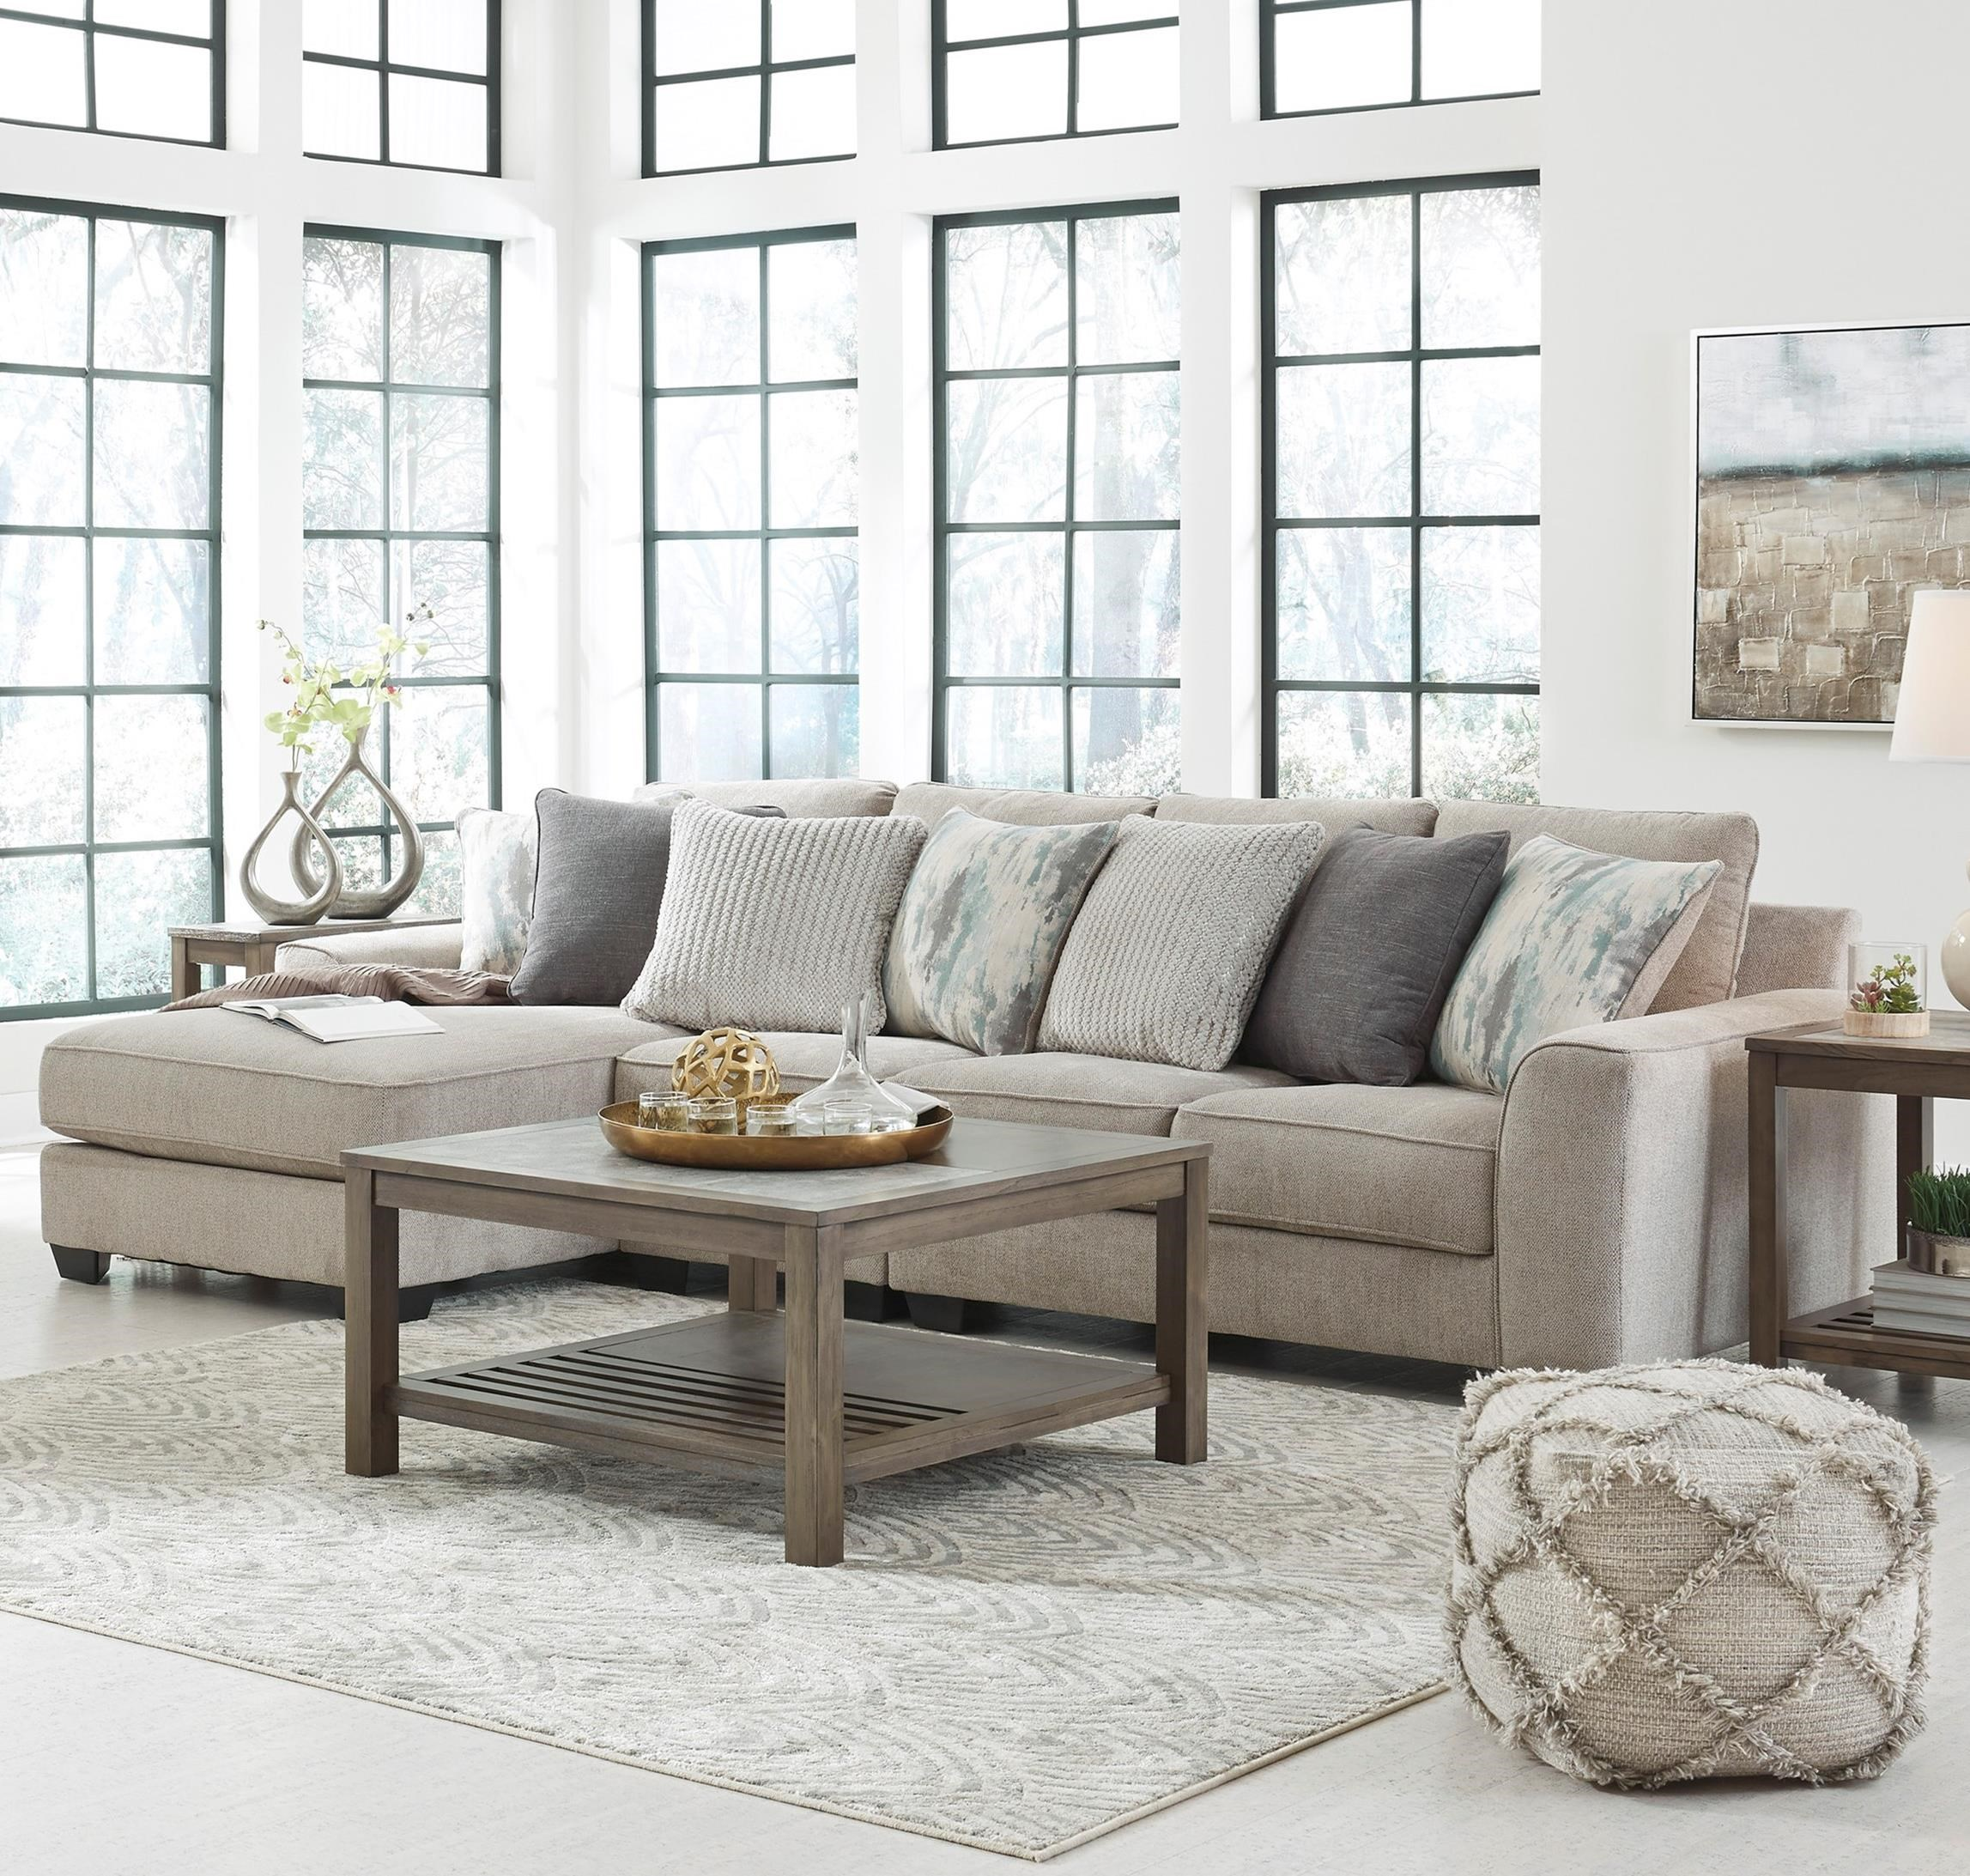 Ardsley 3-Piece Sectional with Left Chaise by Benchcraft at Zak's Warehouse Clearance Center